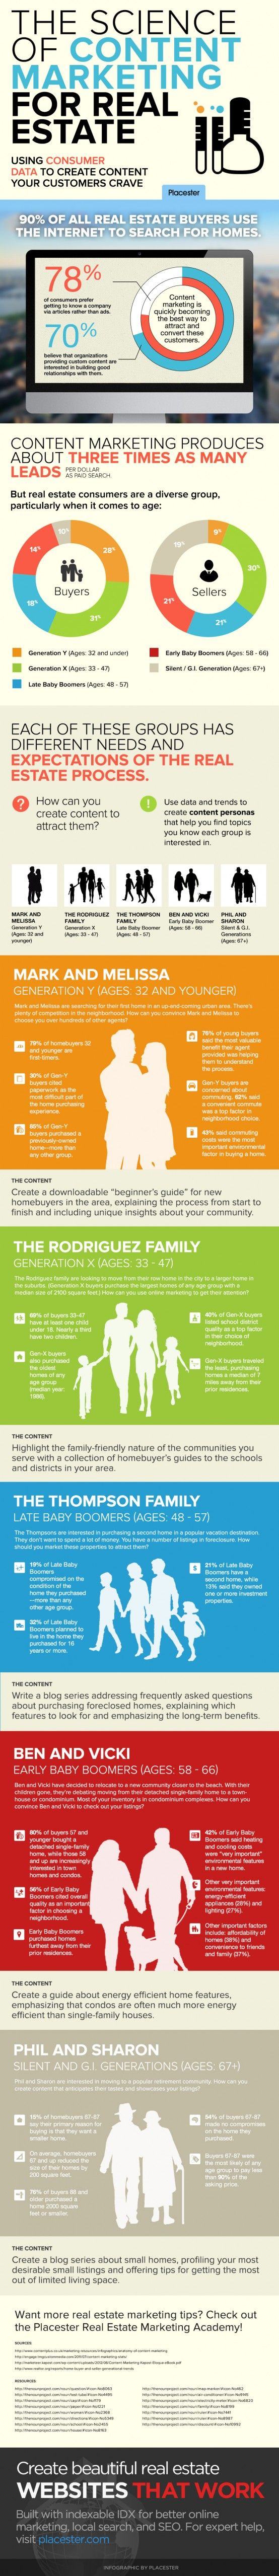 There is a ton of great data on the buying and selling habits of real estate consumers in different...